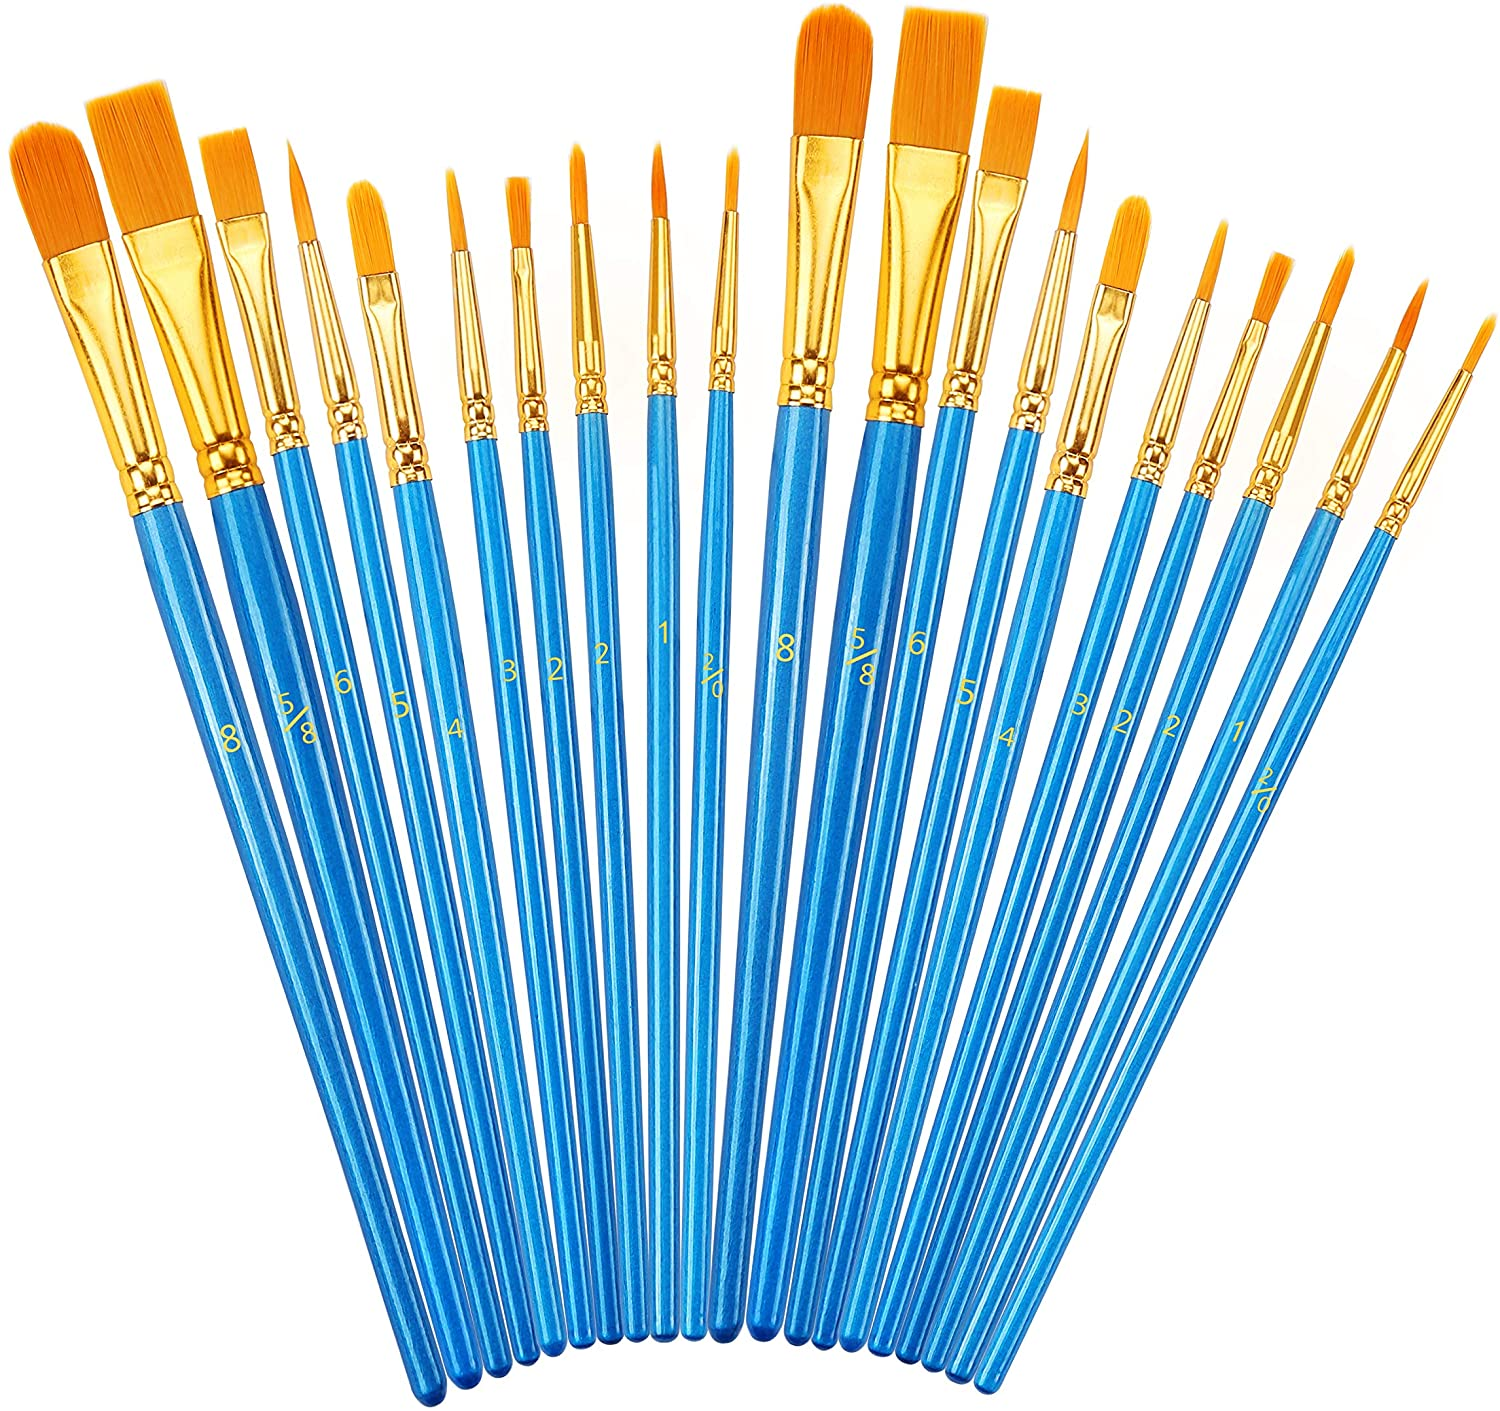 Paint Brush Set, 2Pack 20 Pcs Nylon Hair Brushes for Acrylic Round Pointed Tip Oil Watercolor Painting Artist Professional Painting Kits for Face Body Model Paint, Rock Painting,Miniature Detailing